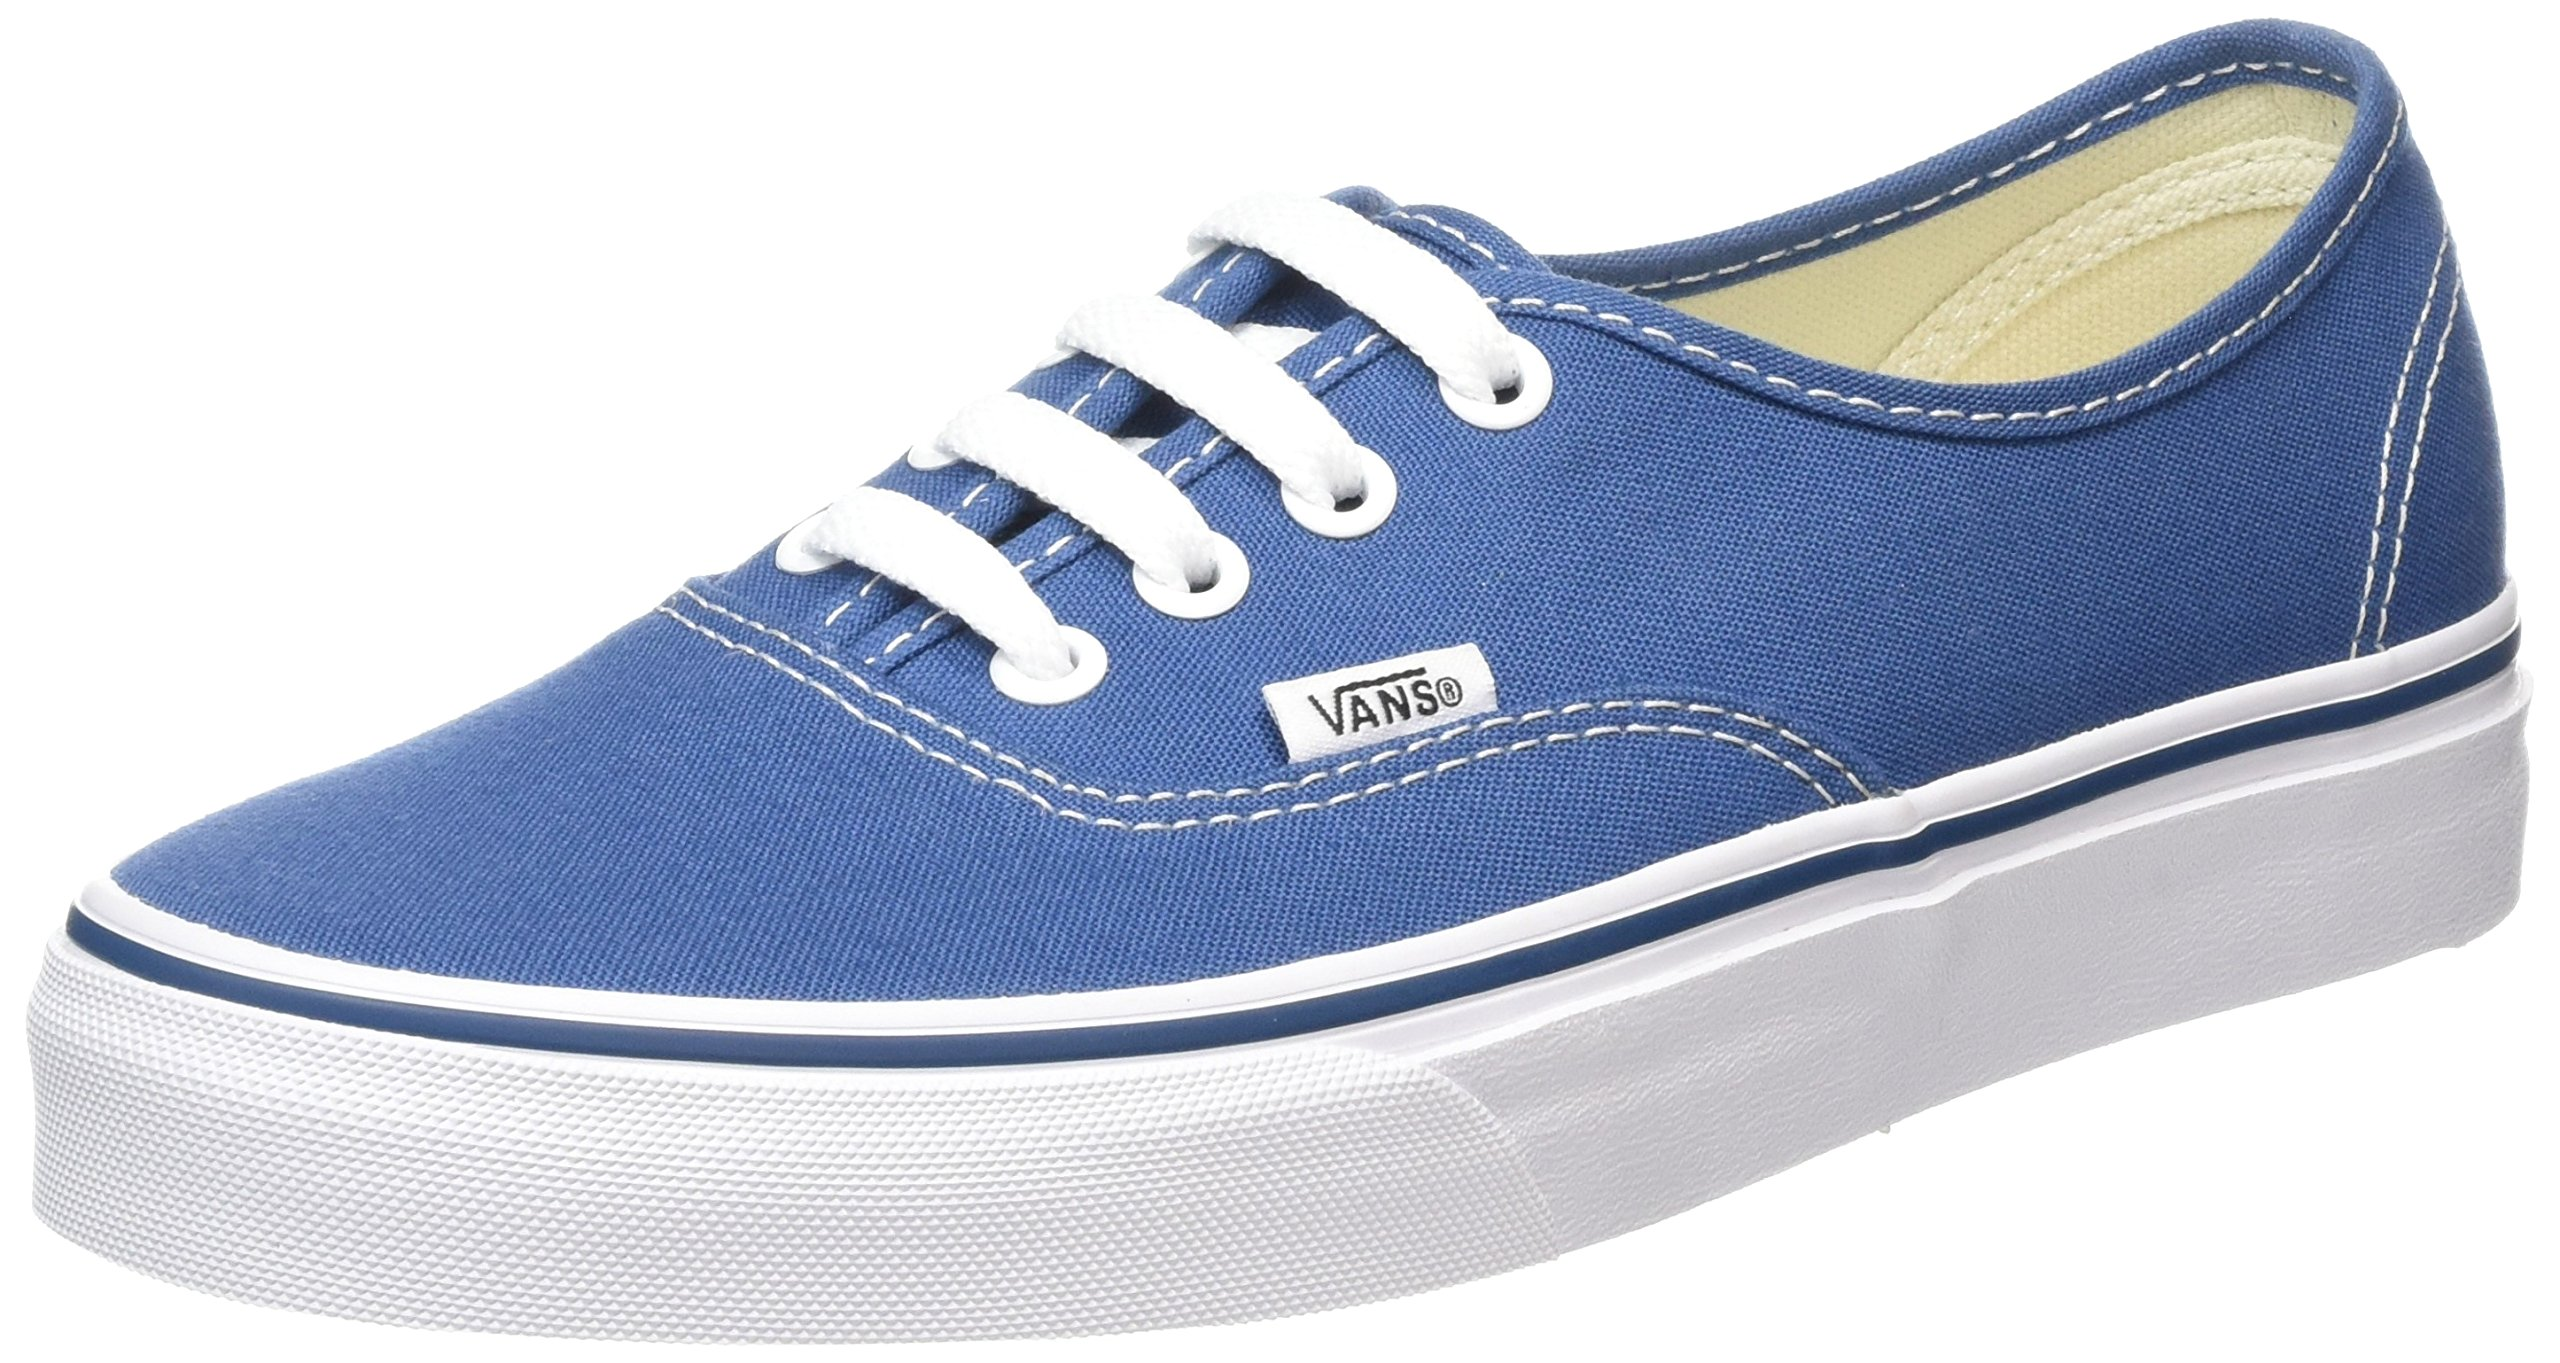 VANS VEE3NVY Unisex Authentic Canvas Sneakers, Navy, 9.5 B(M) US Women / 8 D(M) US Men by Vans